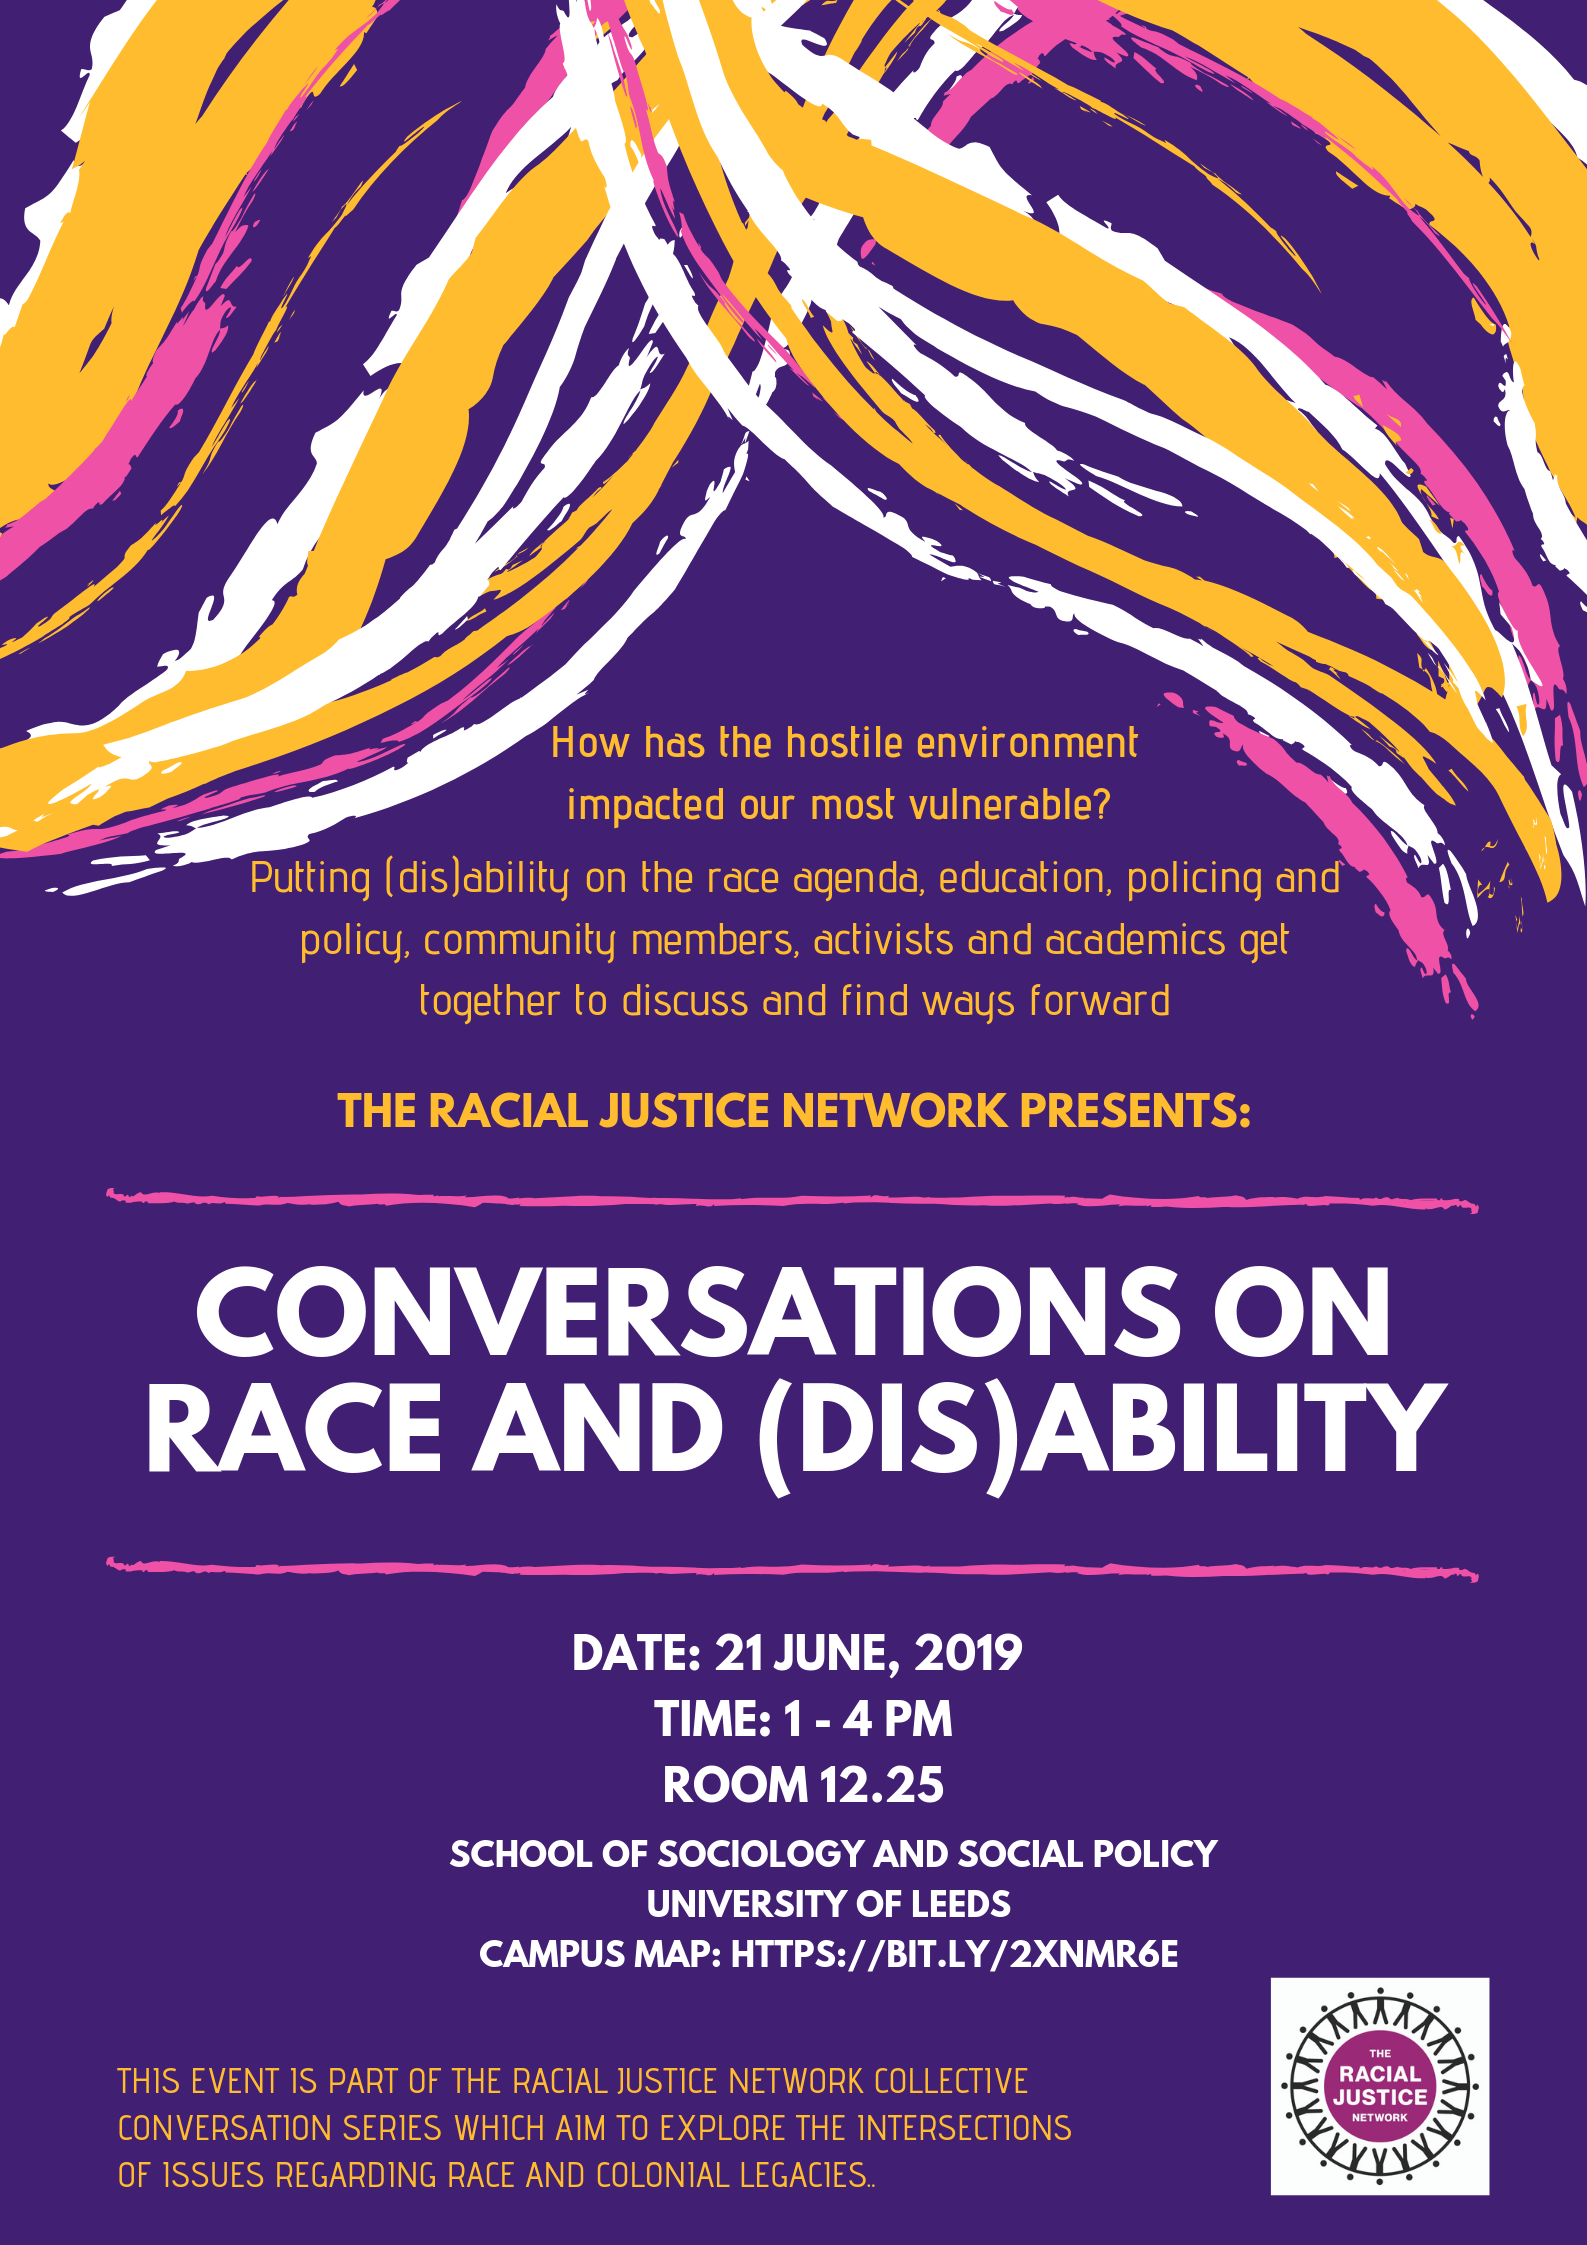 Poster with all the information included in this event listing. The poster has a purple background with a pattern of yellow, white and pink swishes at the top. The text of the poster is in white, yellow and pink. The Racial Justice Network logo is in the bottom right corner.